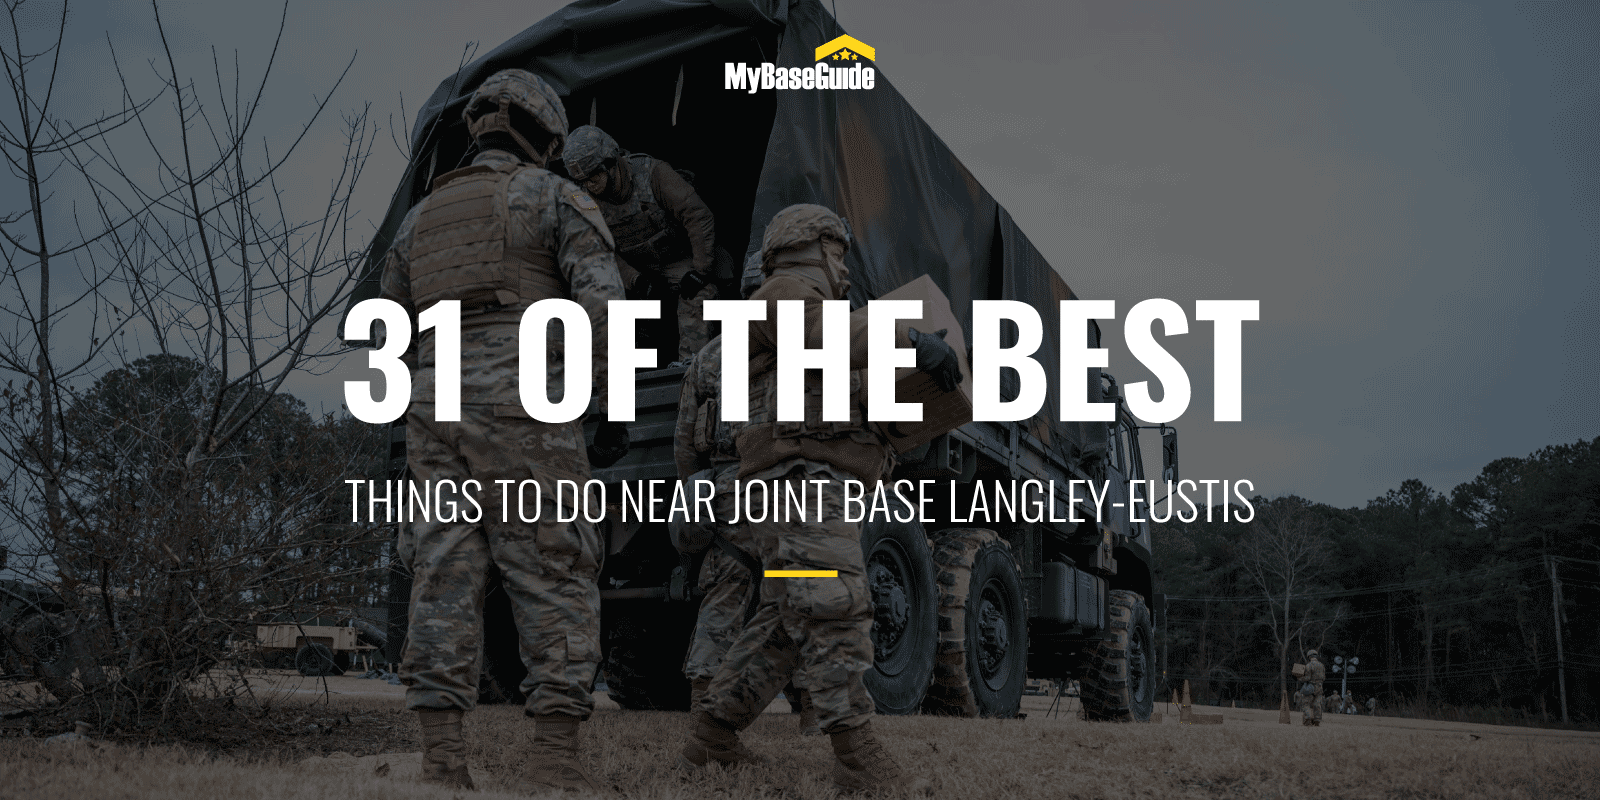 31 Of the Best Joint Base Langley-Eustis Things to Do